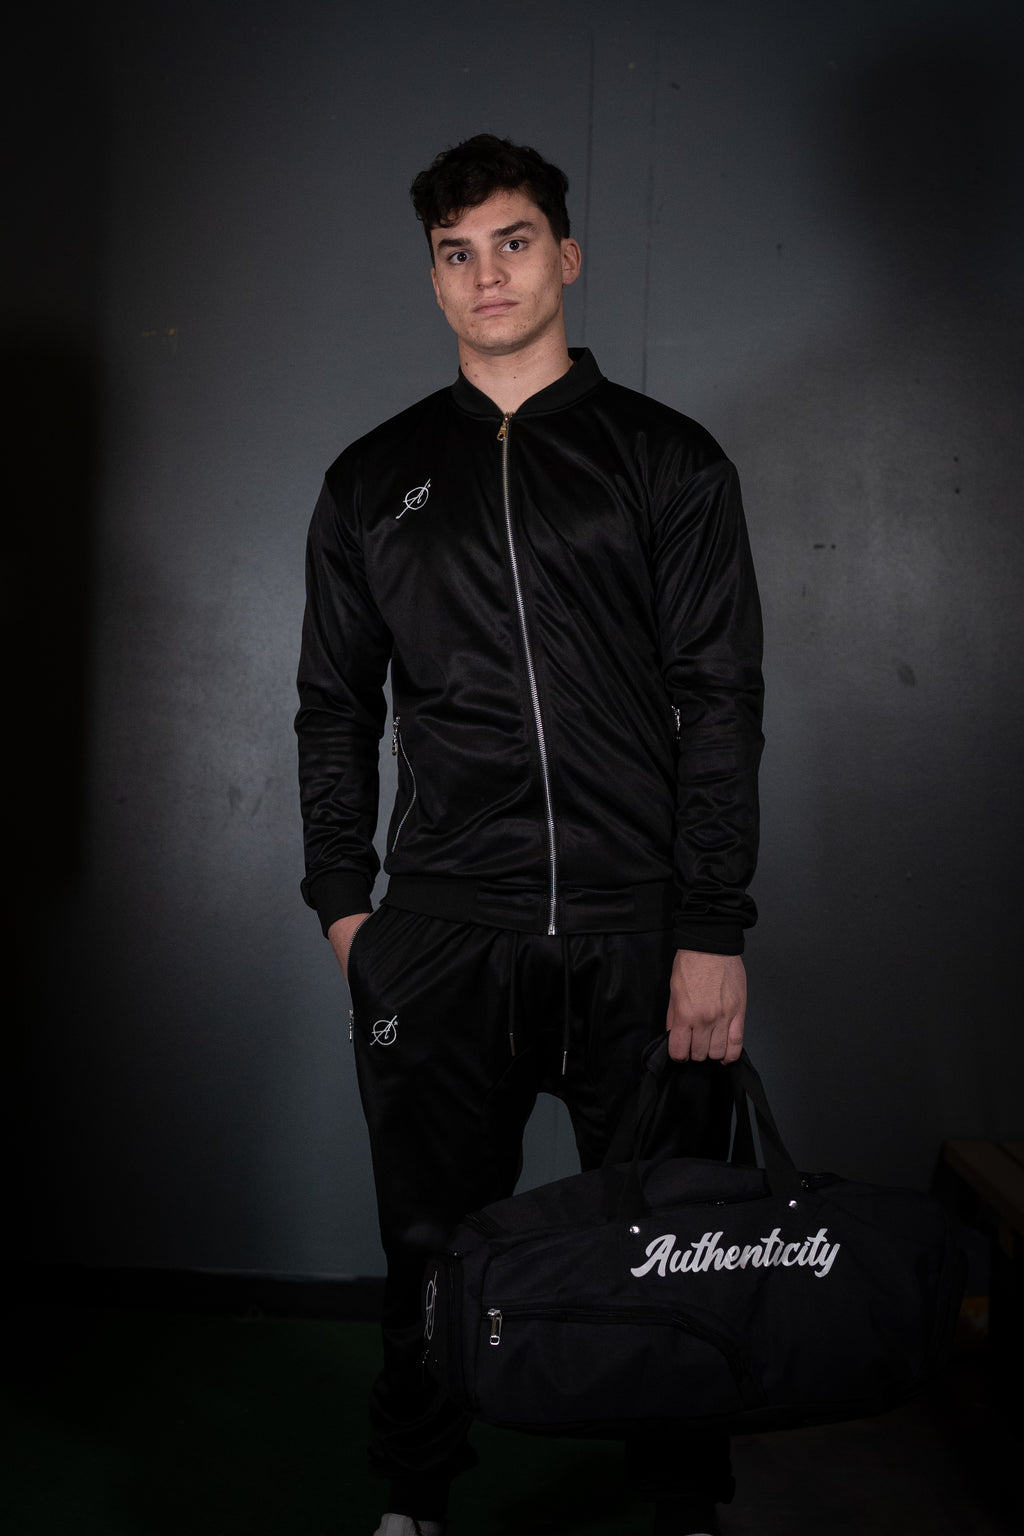 Authenticity 'Insignia' Tracksuit